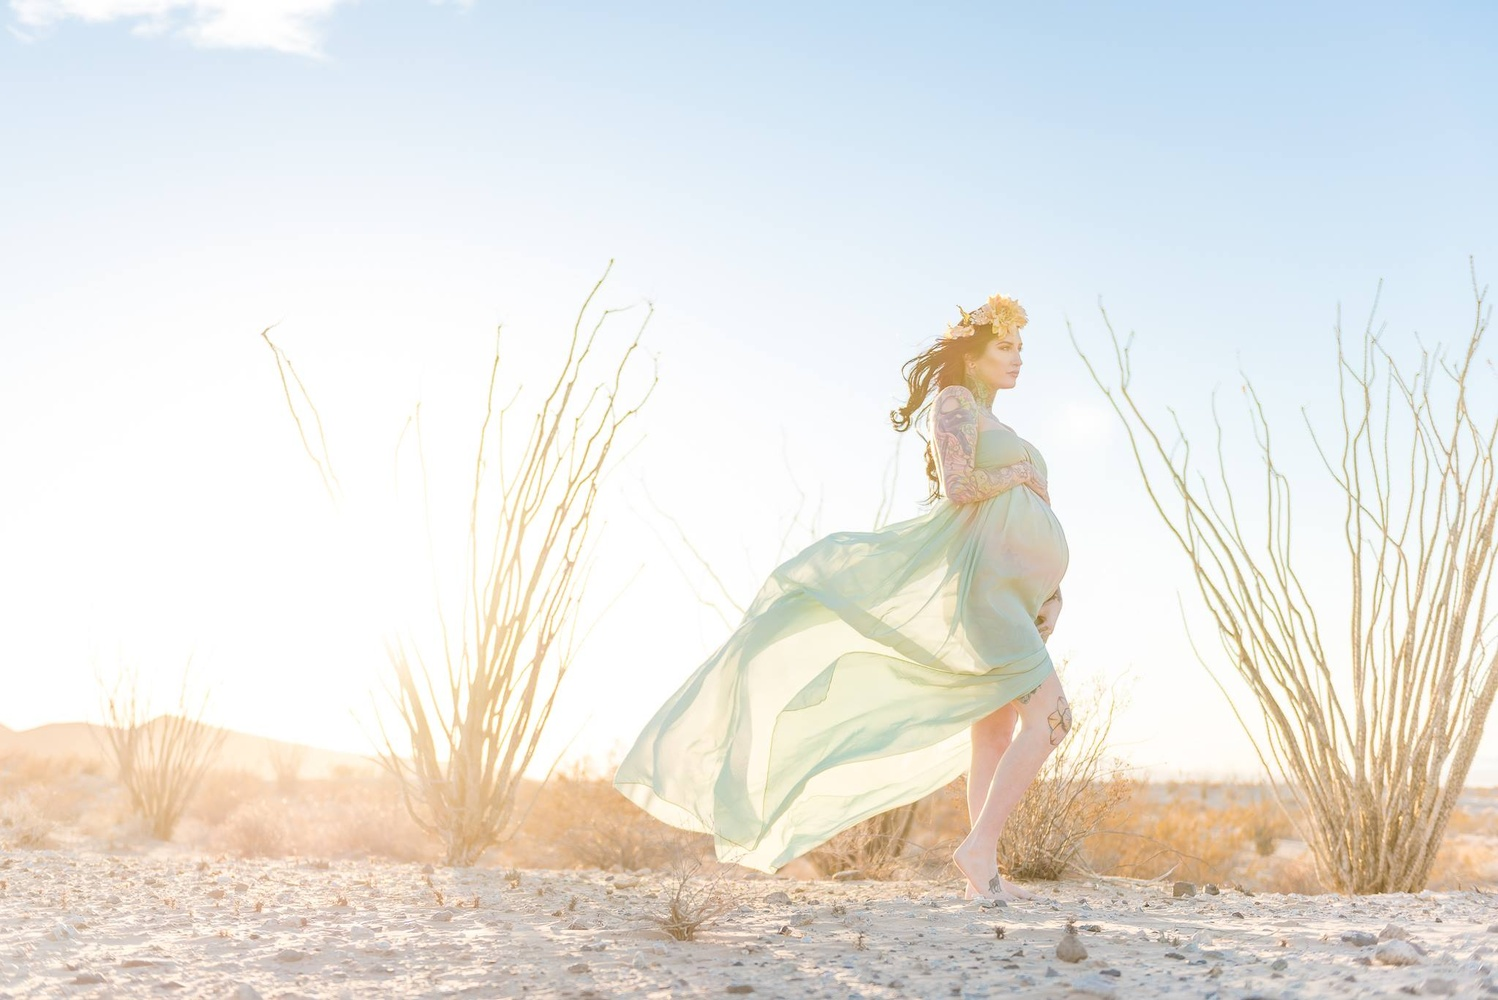 Desert Maternity Session by Dusty Wooddell